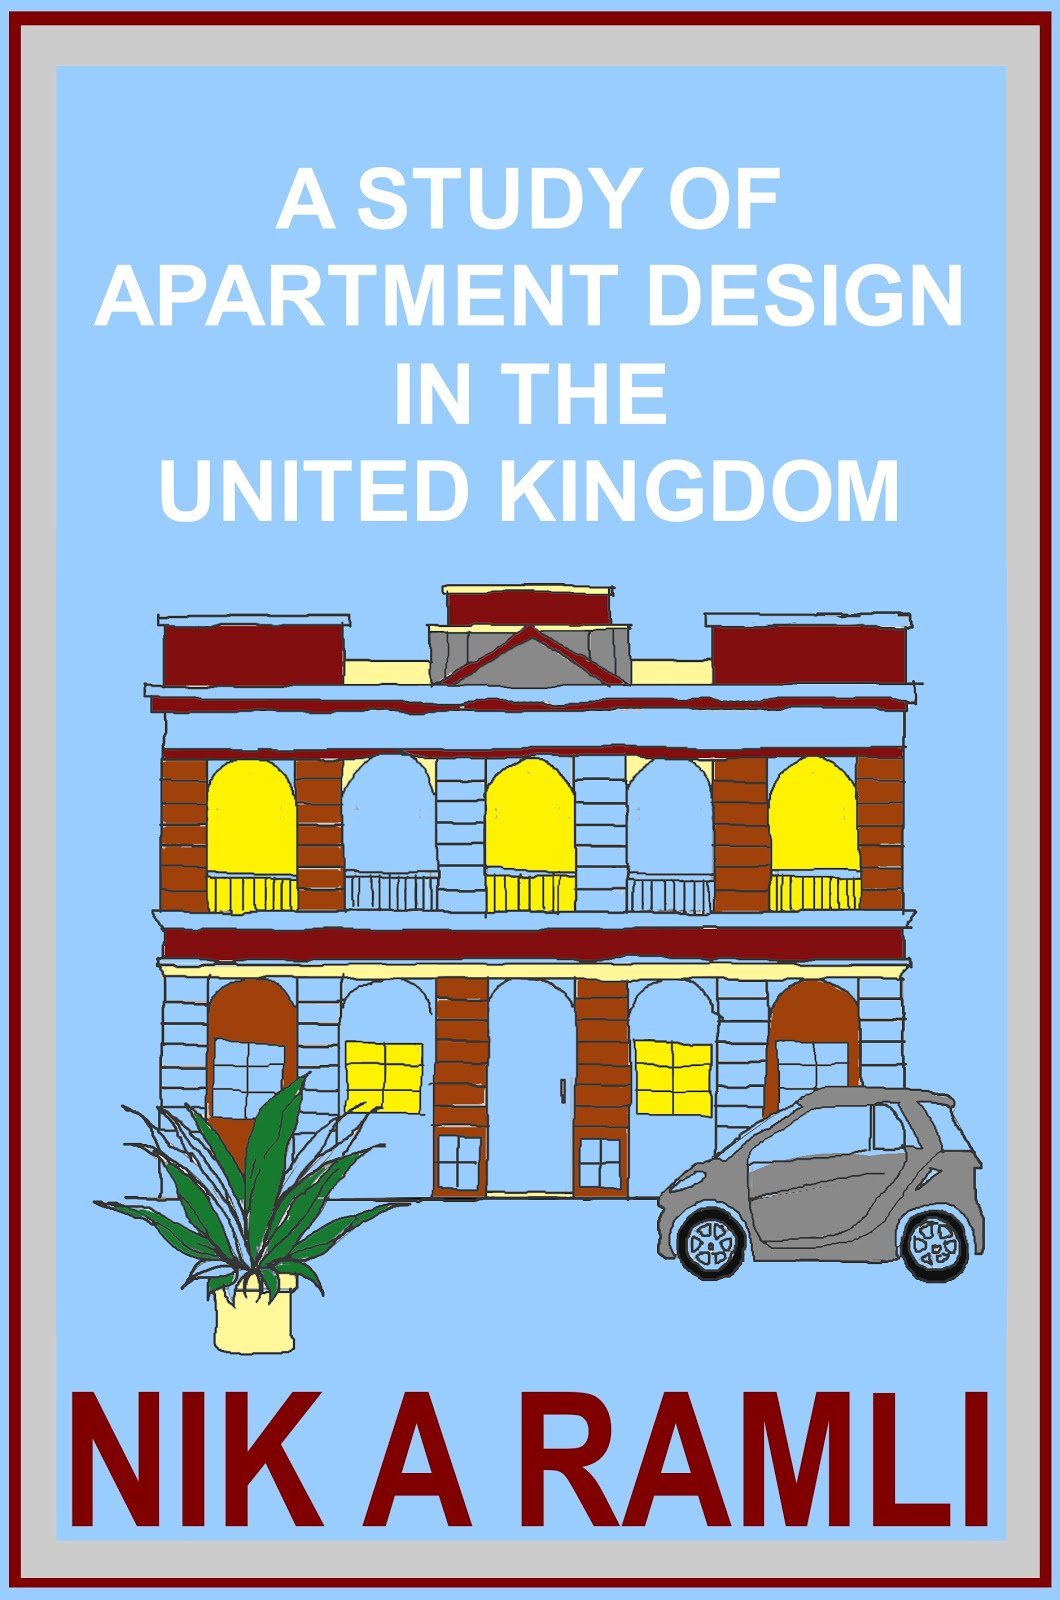 A STUDY OF APARTMENT DESIGN IN THE UNITED KINGDOM